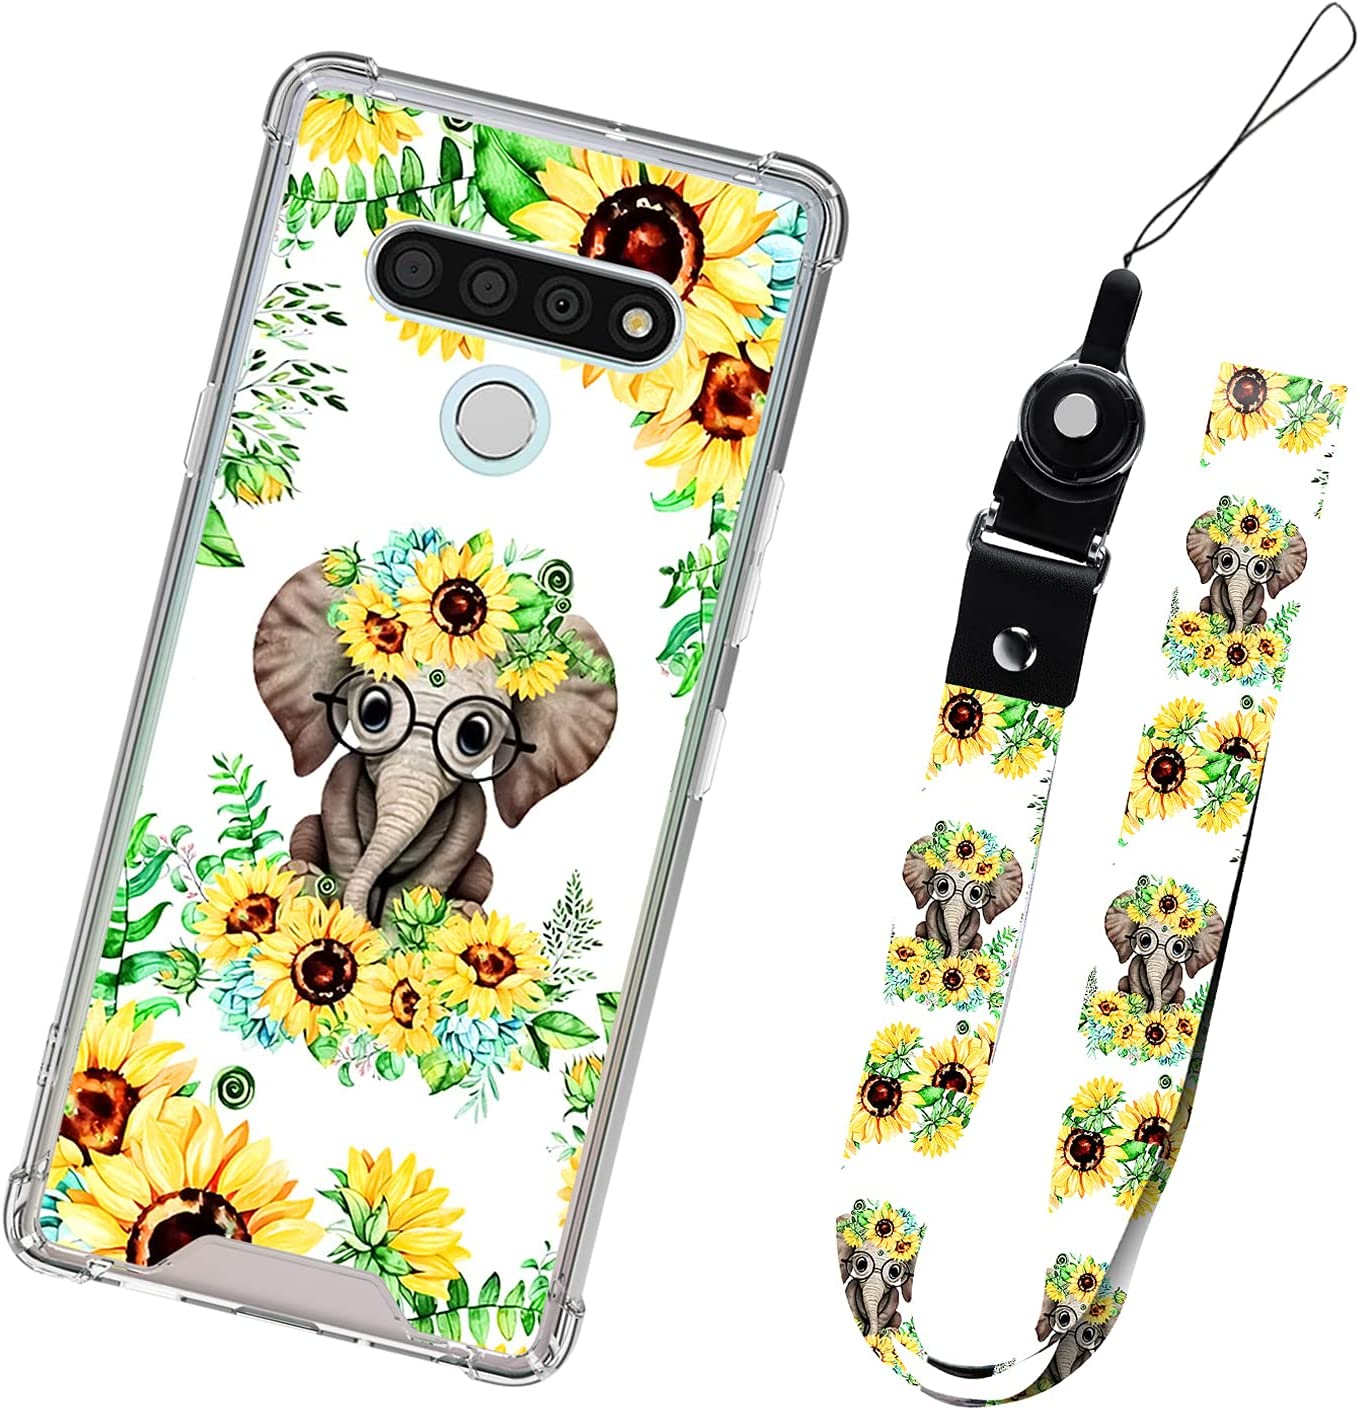 LG K51 5G Case Sunflower Floral with Lanyard for Women Girls Protective Shockproof Heavy Duty Cute Elephant Flower Pattern Cell Phone Bumper Cover Case Neck Strap for LG K51 5G 6.5